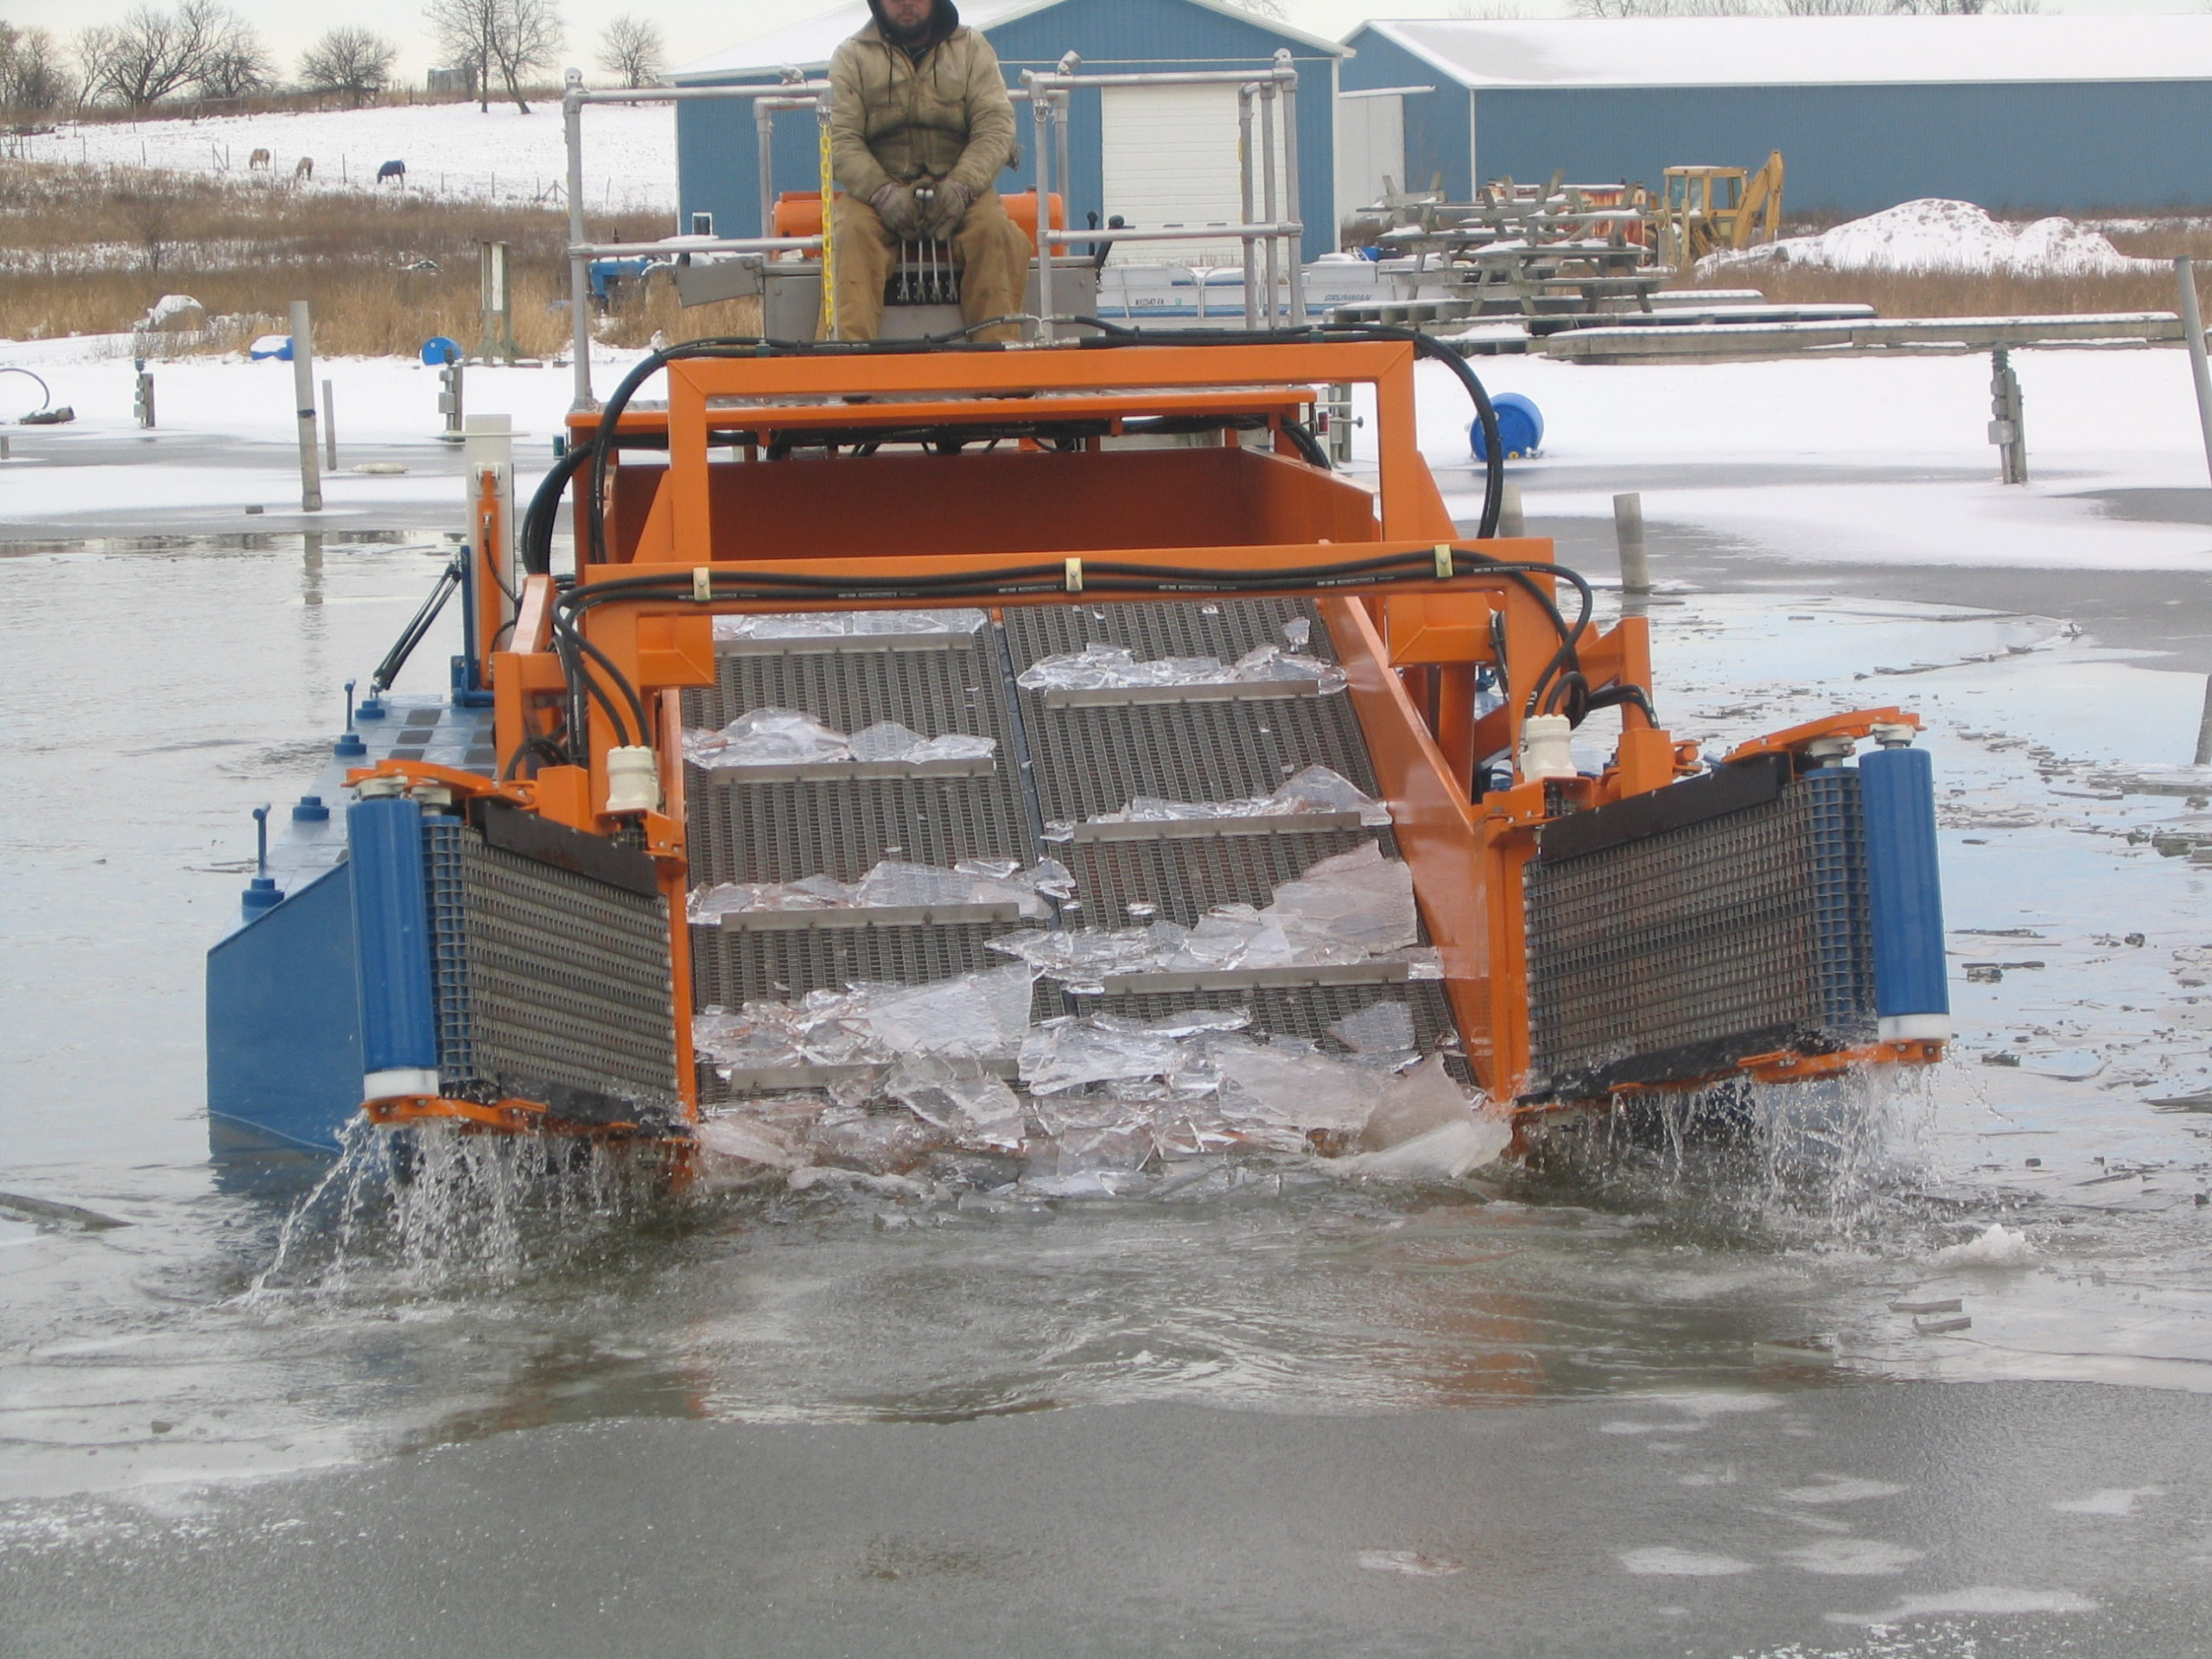 MC 202 picking up winter ice from a marina